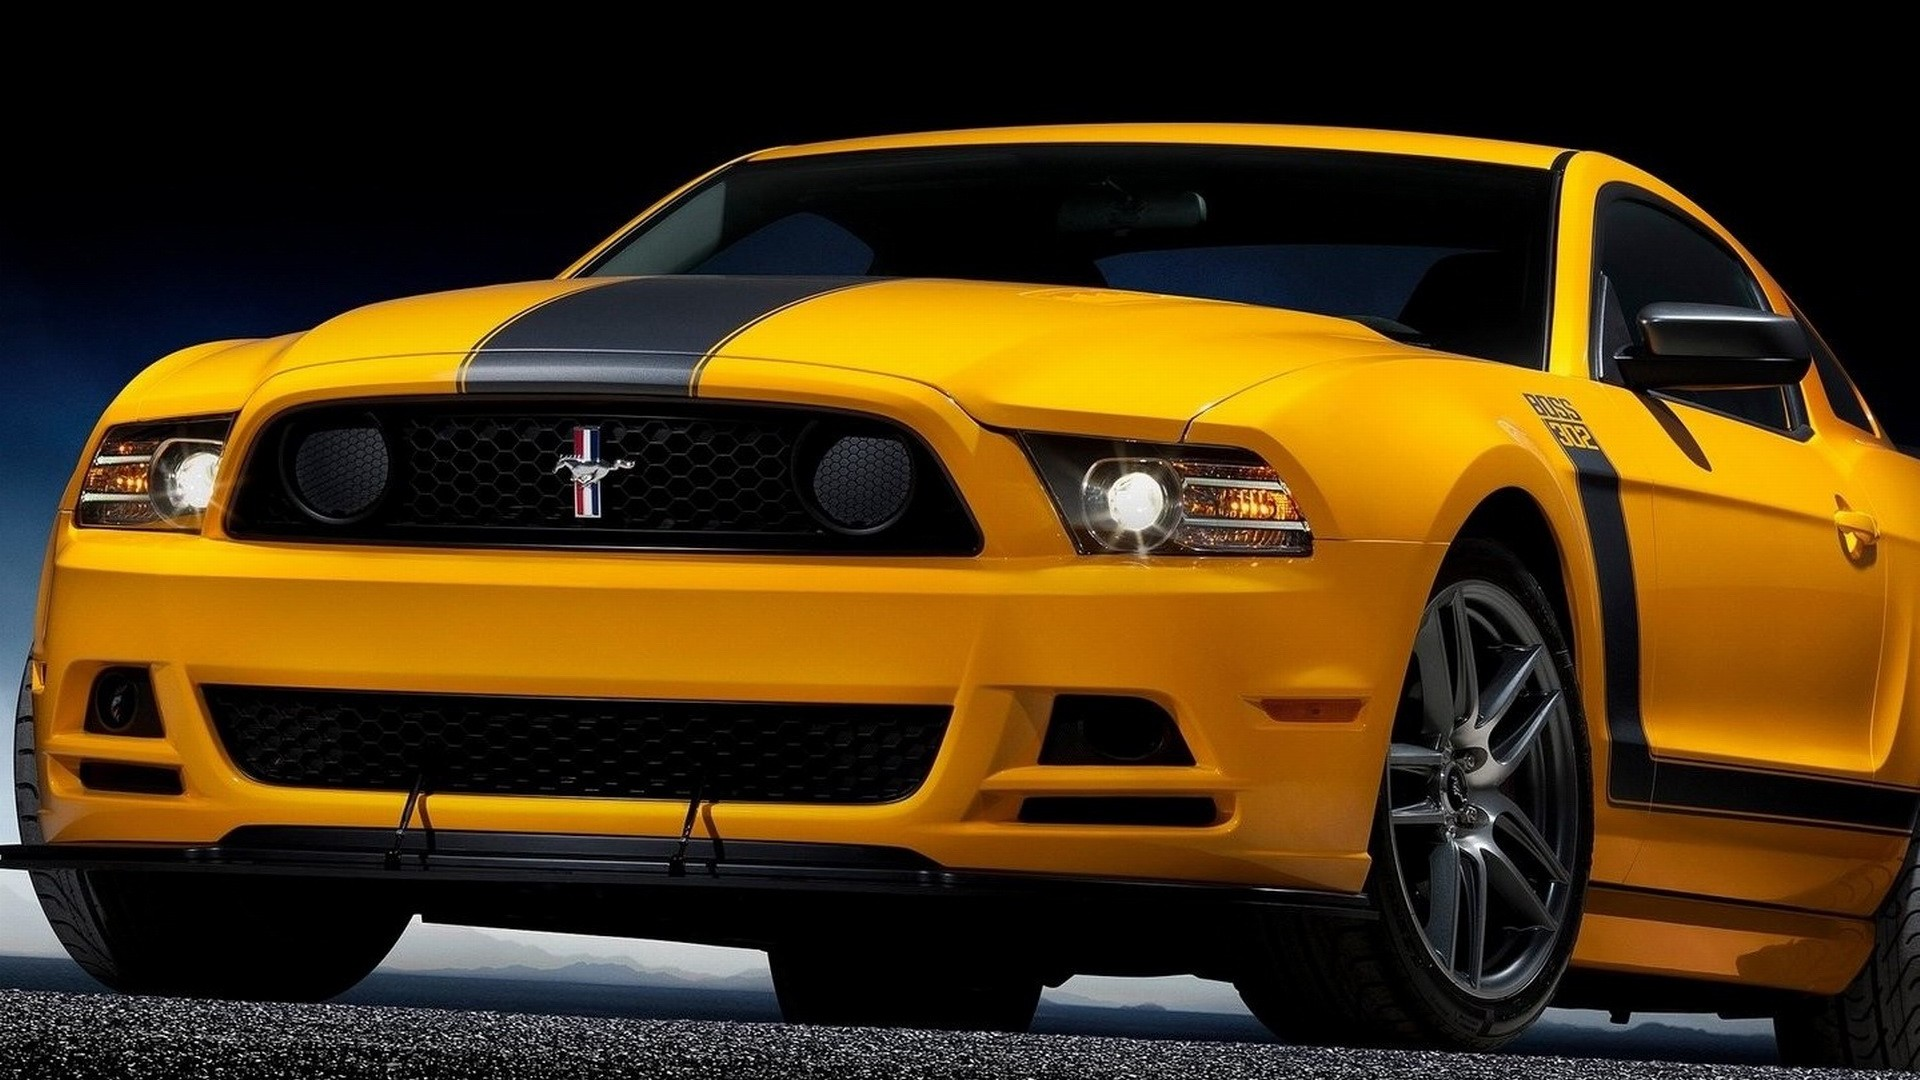 ford mustang boss 302 front angle speed 2 1920x1440 wallpaper Car 1920x1080